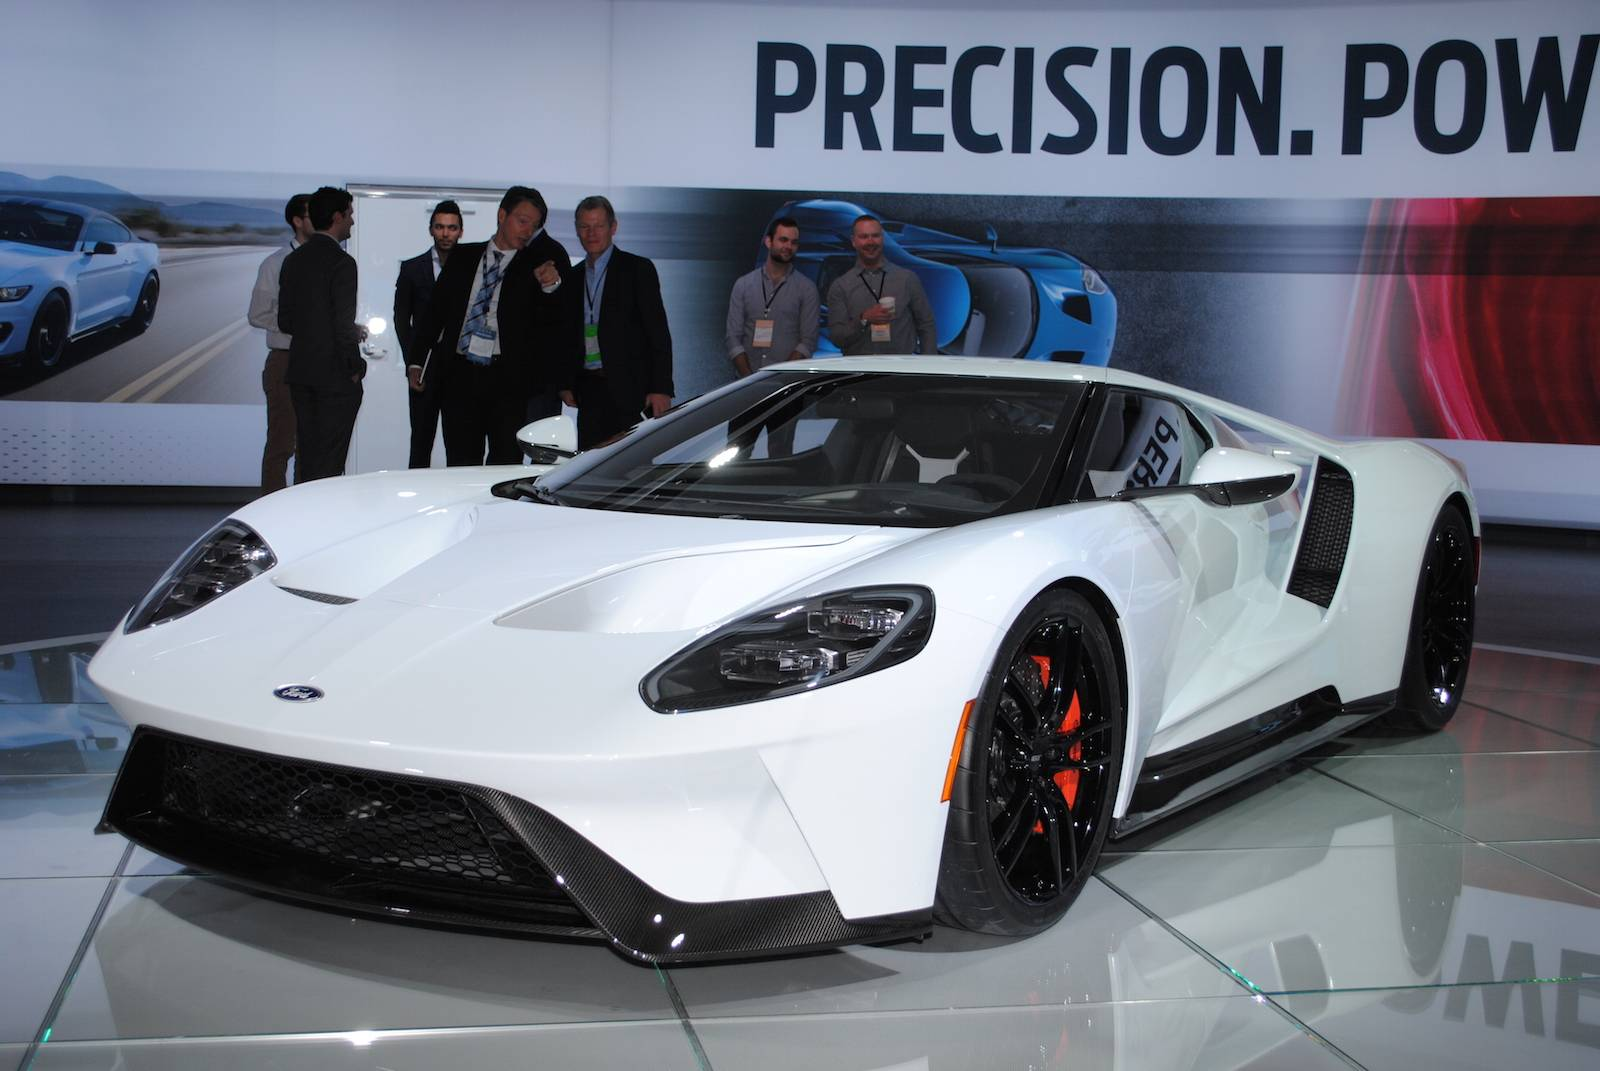 2017 FORD GT Displayed At 2016 Detroit Motor Show 1